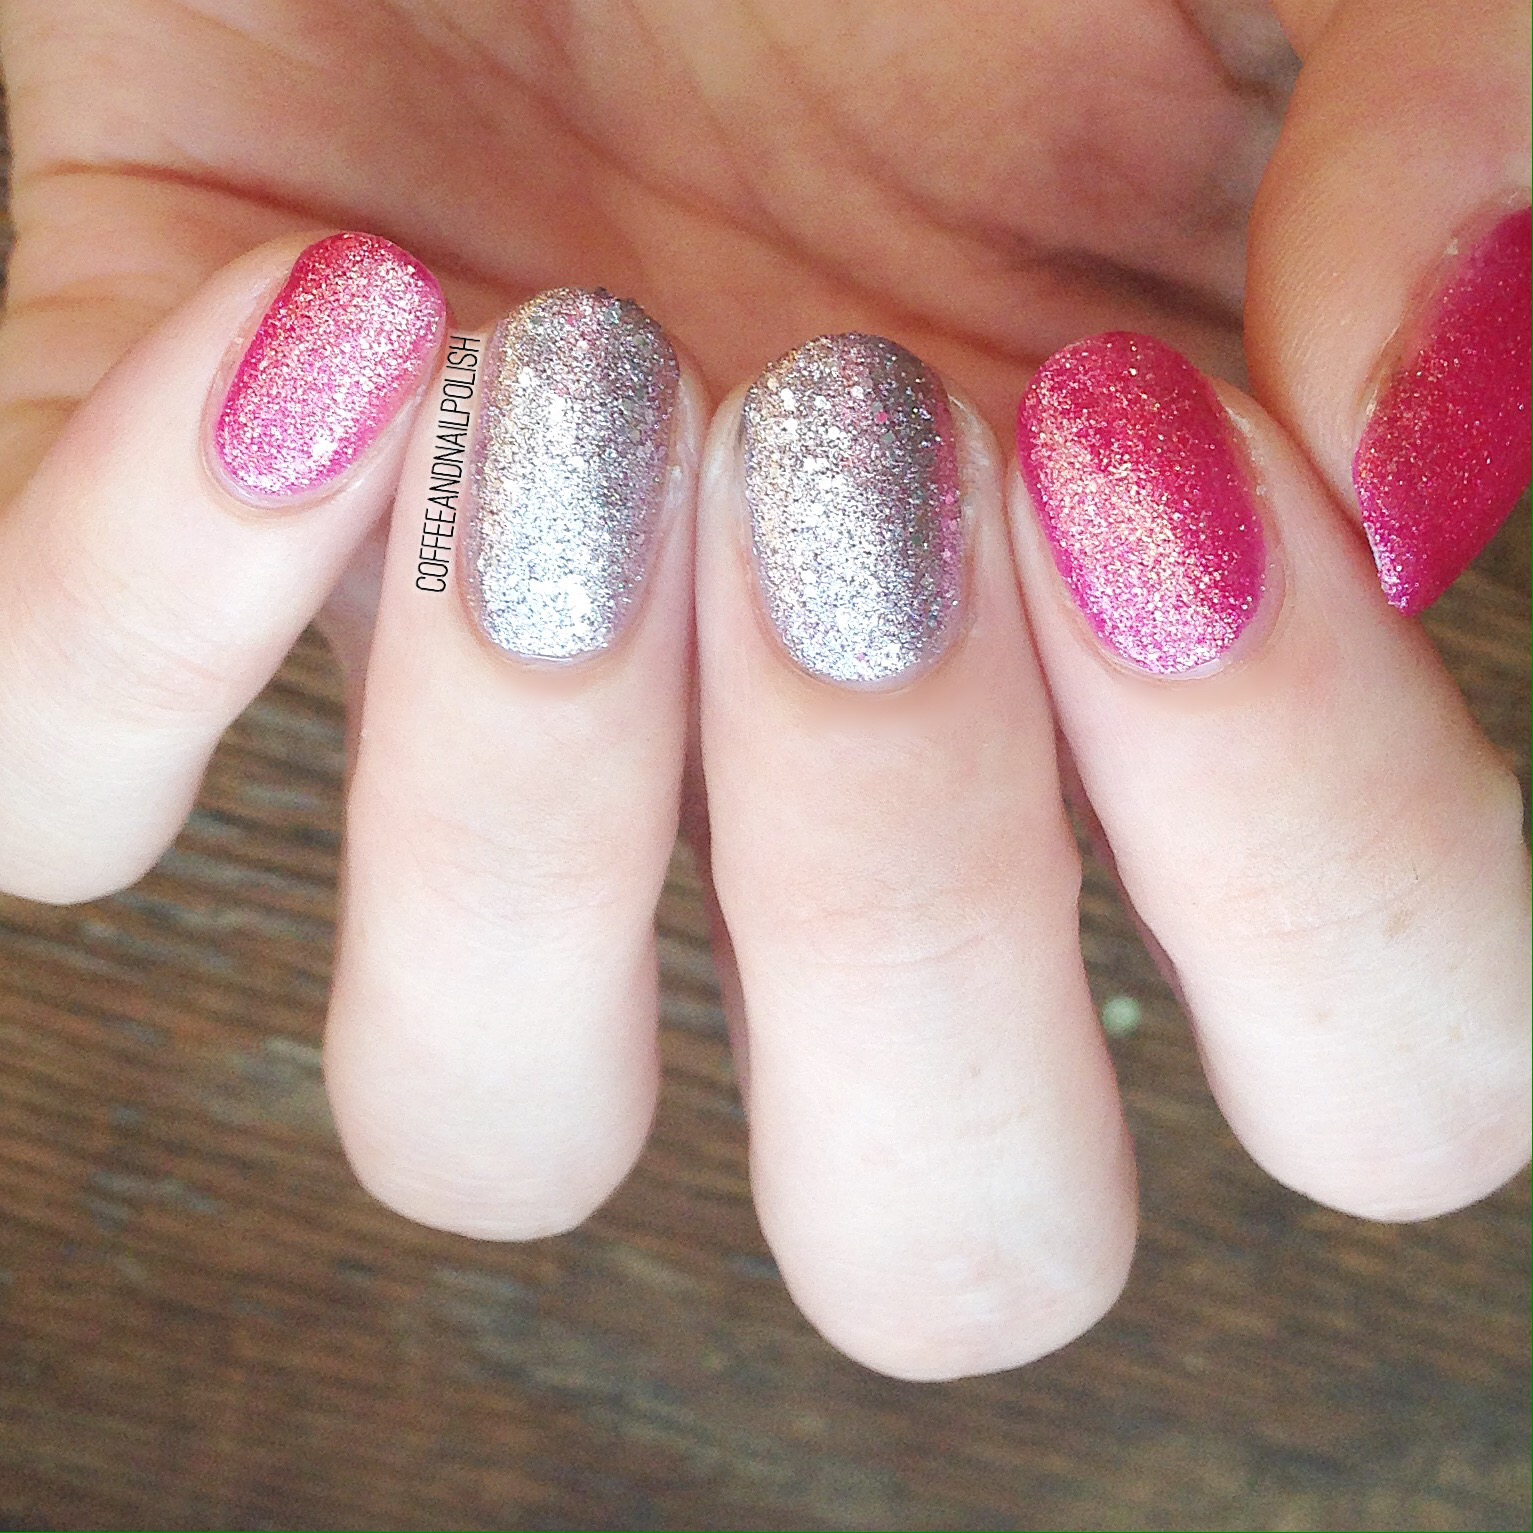 First Up We Have The Glitters In Collection One Pink And More Of A Rose Gold Both These Polishes Went On Easily Two Coats